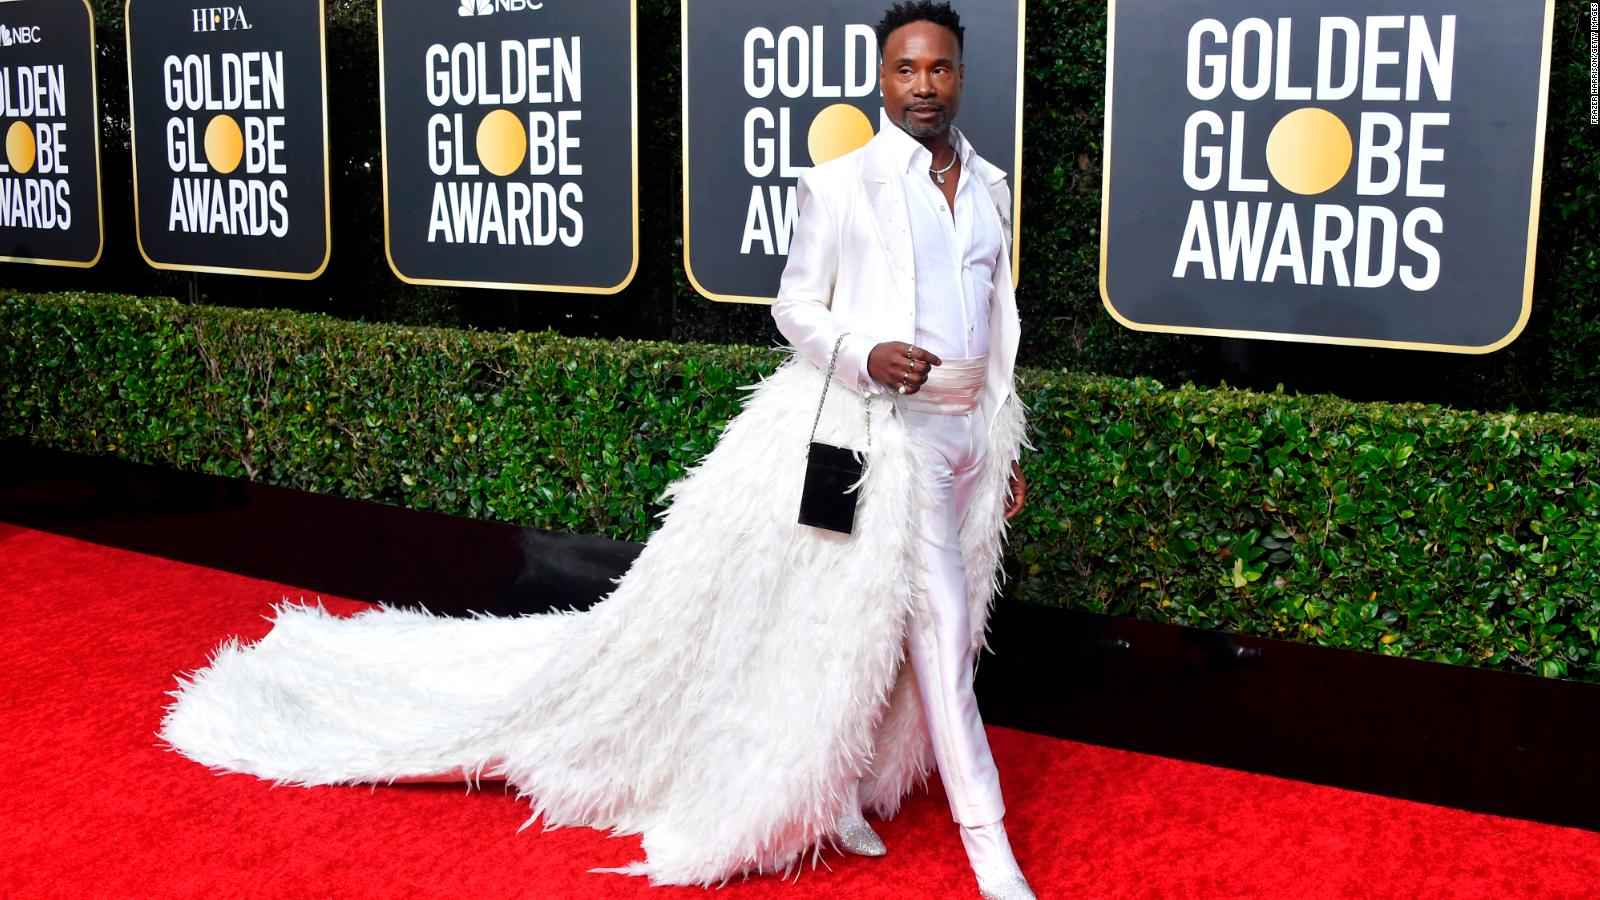 Golden Globes 2020 Best fashion on the red carpet   CNN Style 1600x900